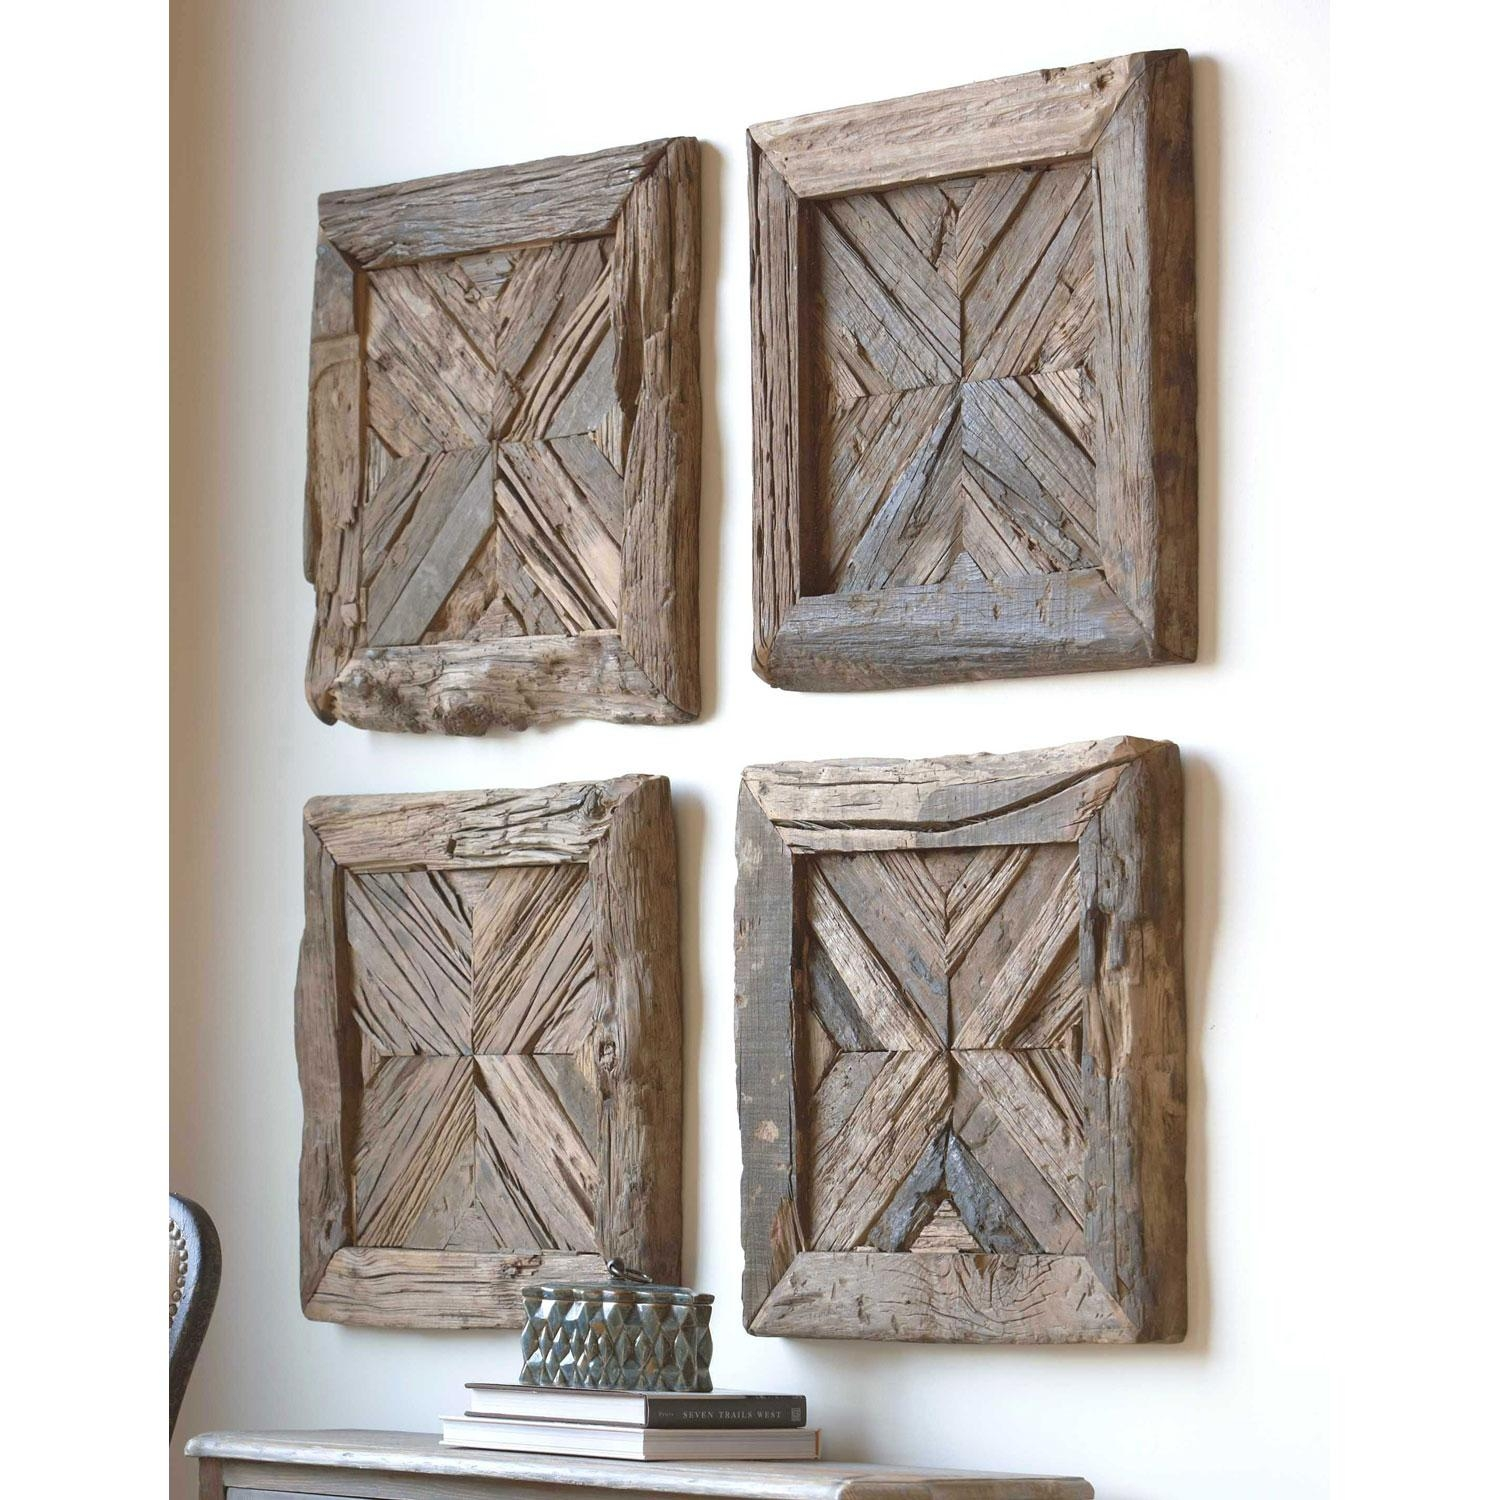 Rennick Rustic Wood Wall Art Uttermost Wall Sculpture Wall Decor Intended For Uttermost Metal Wall Art (View 6 of 20)